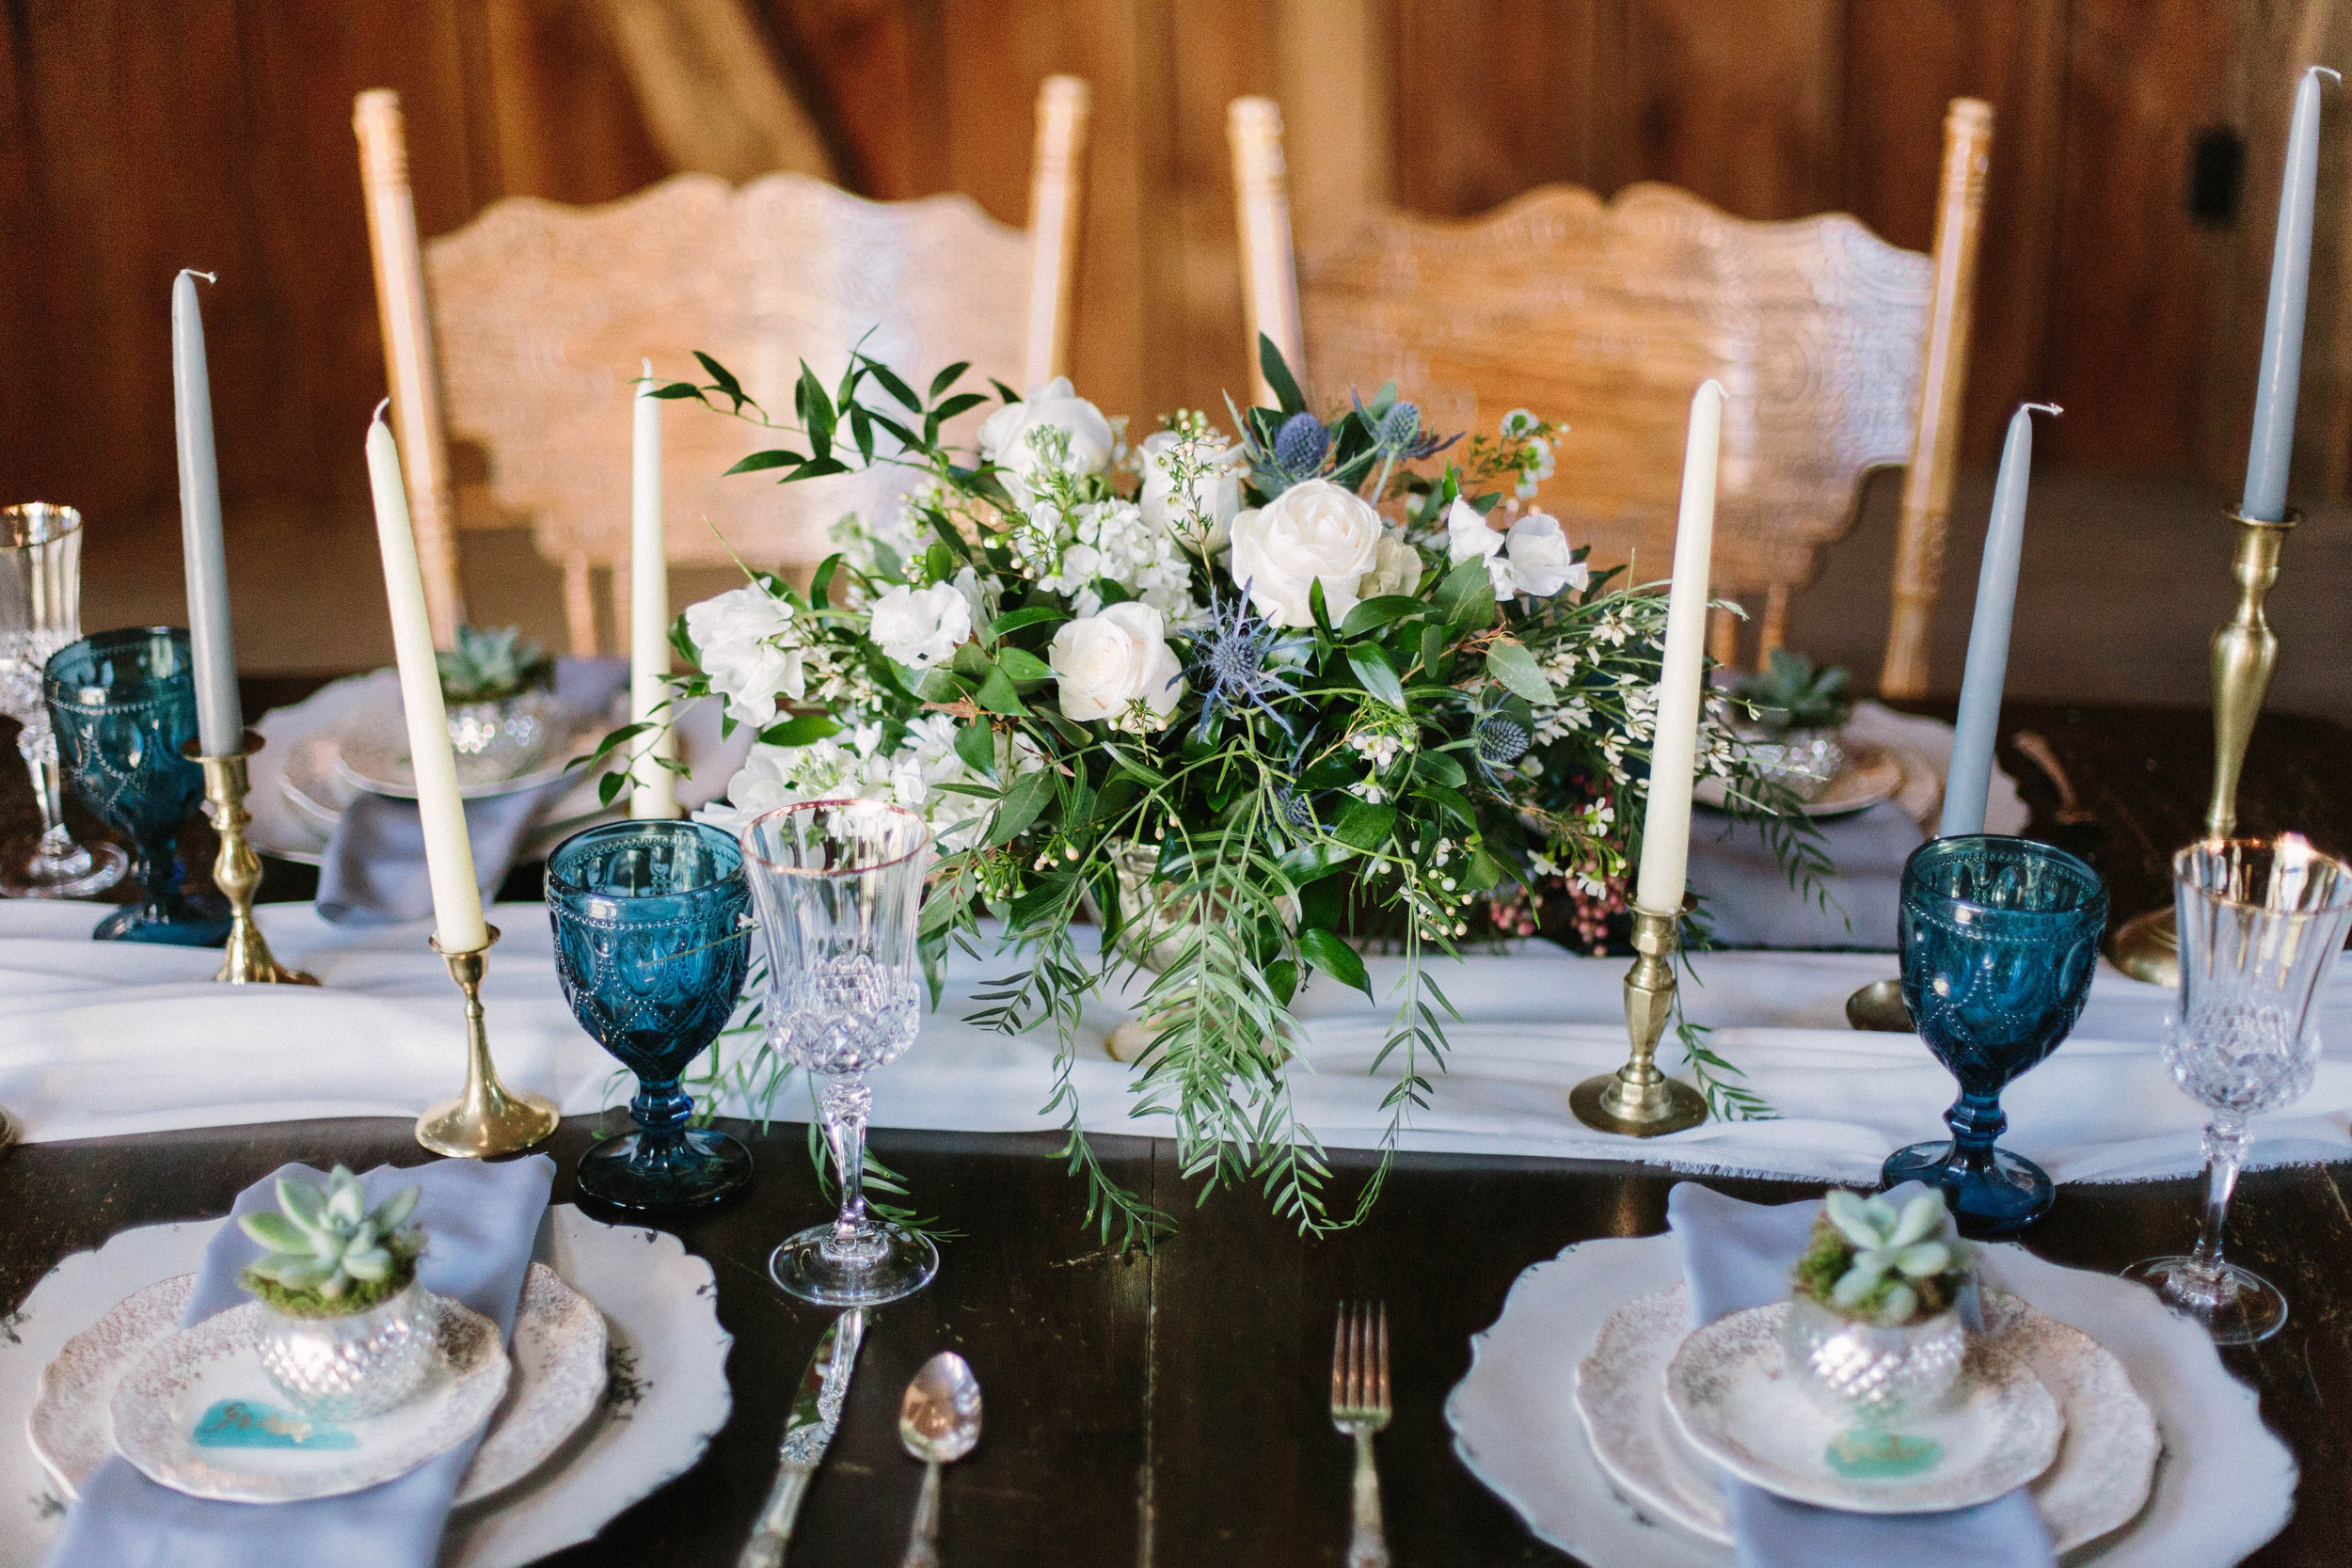 2017 Styled Shoot At The Pour Vineyard Veronica Young Photog-0005.jpg